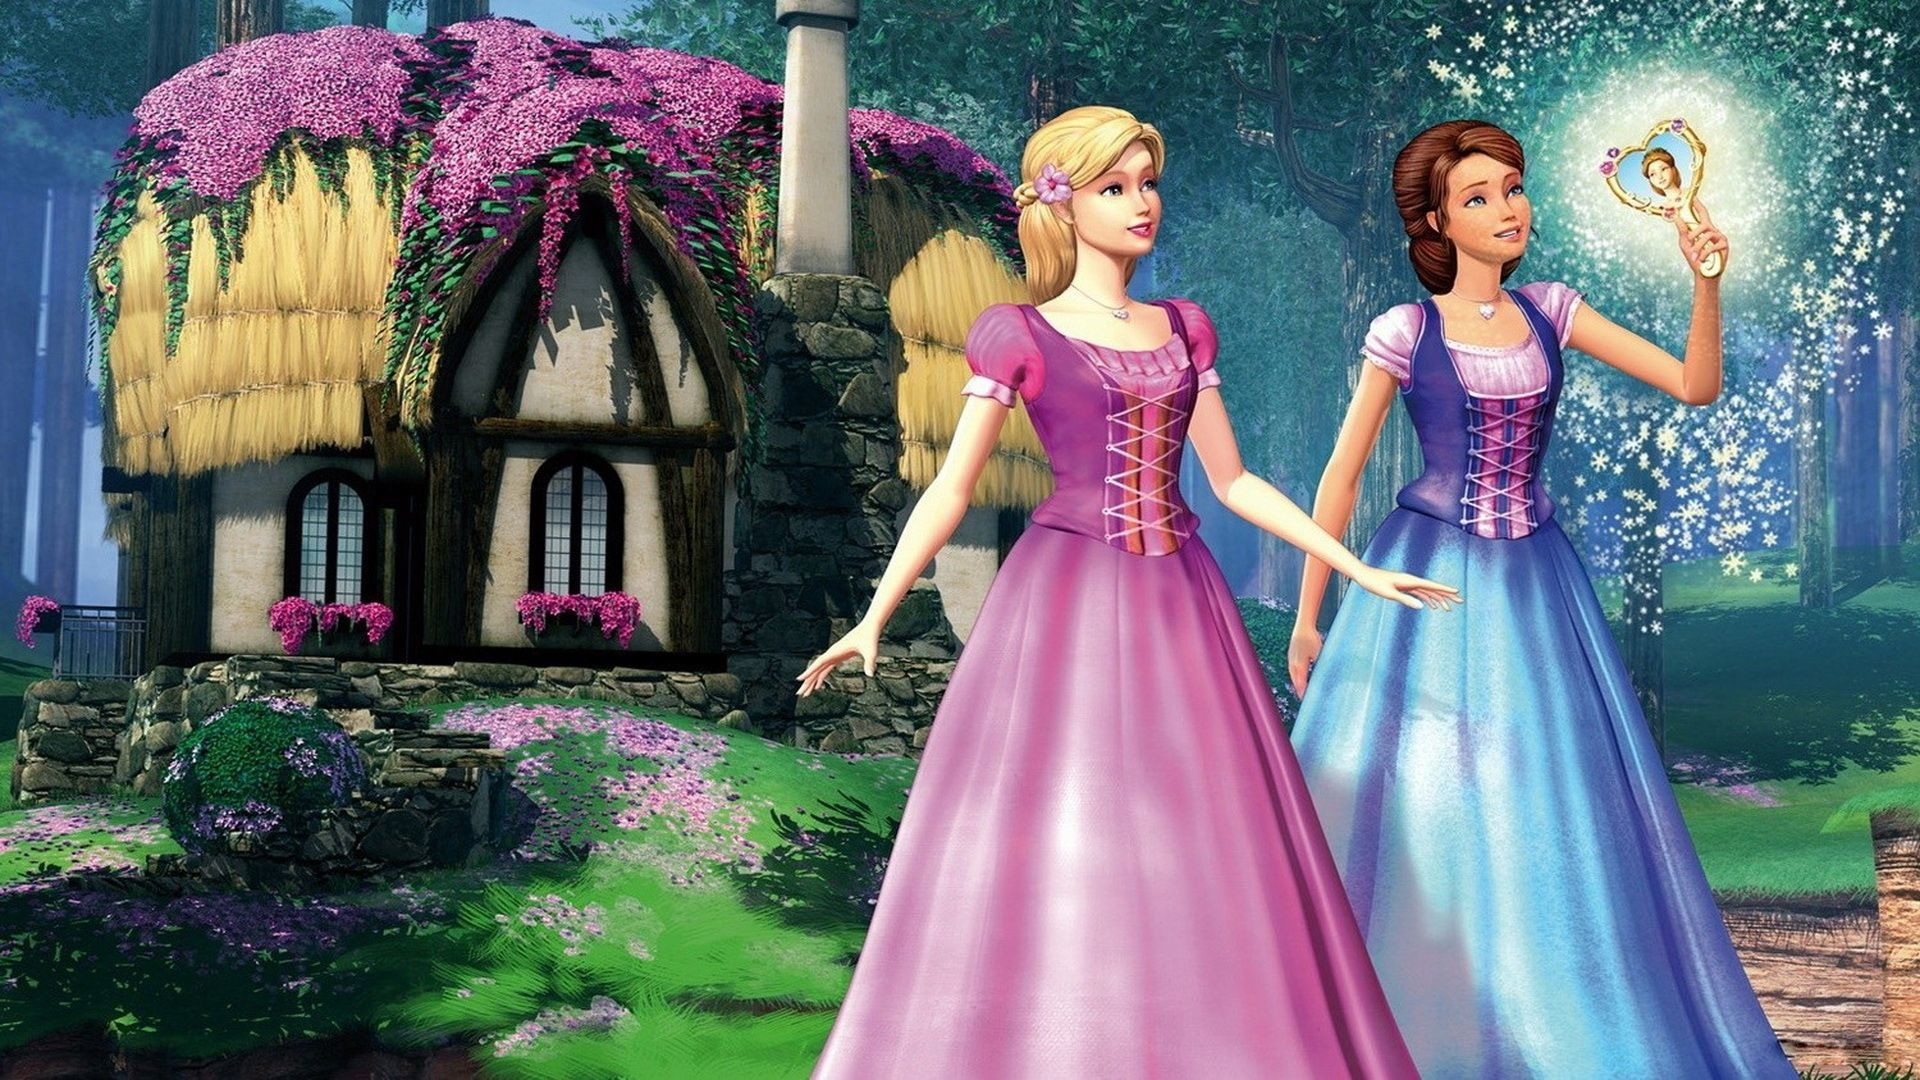 Barbie And The Diamond Castle , HD Wallpaper & Backgrounds